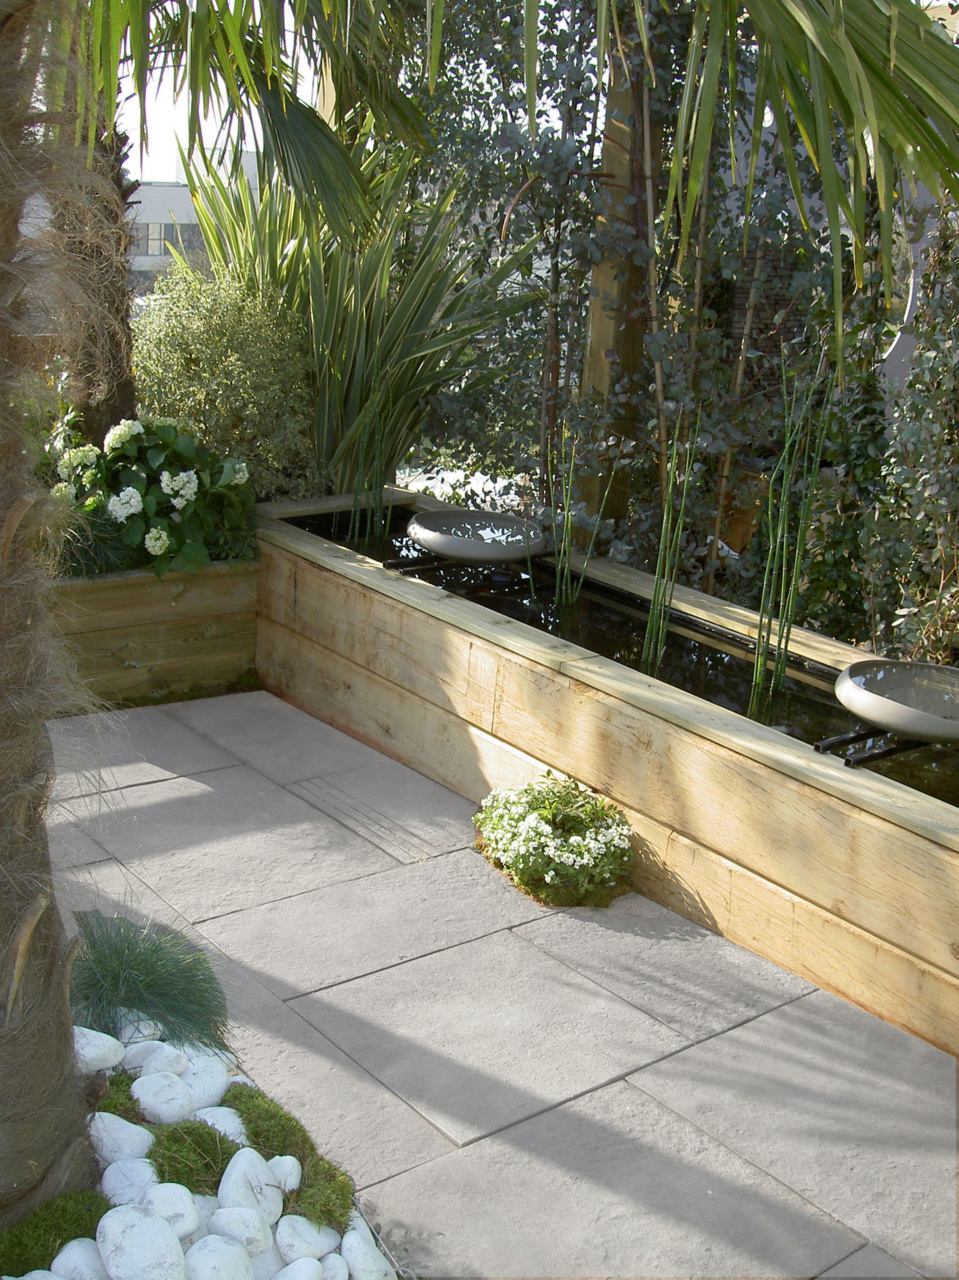 L'eau, point de mire des variations BRADSTONE